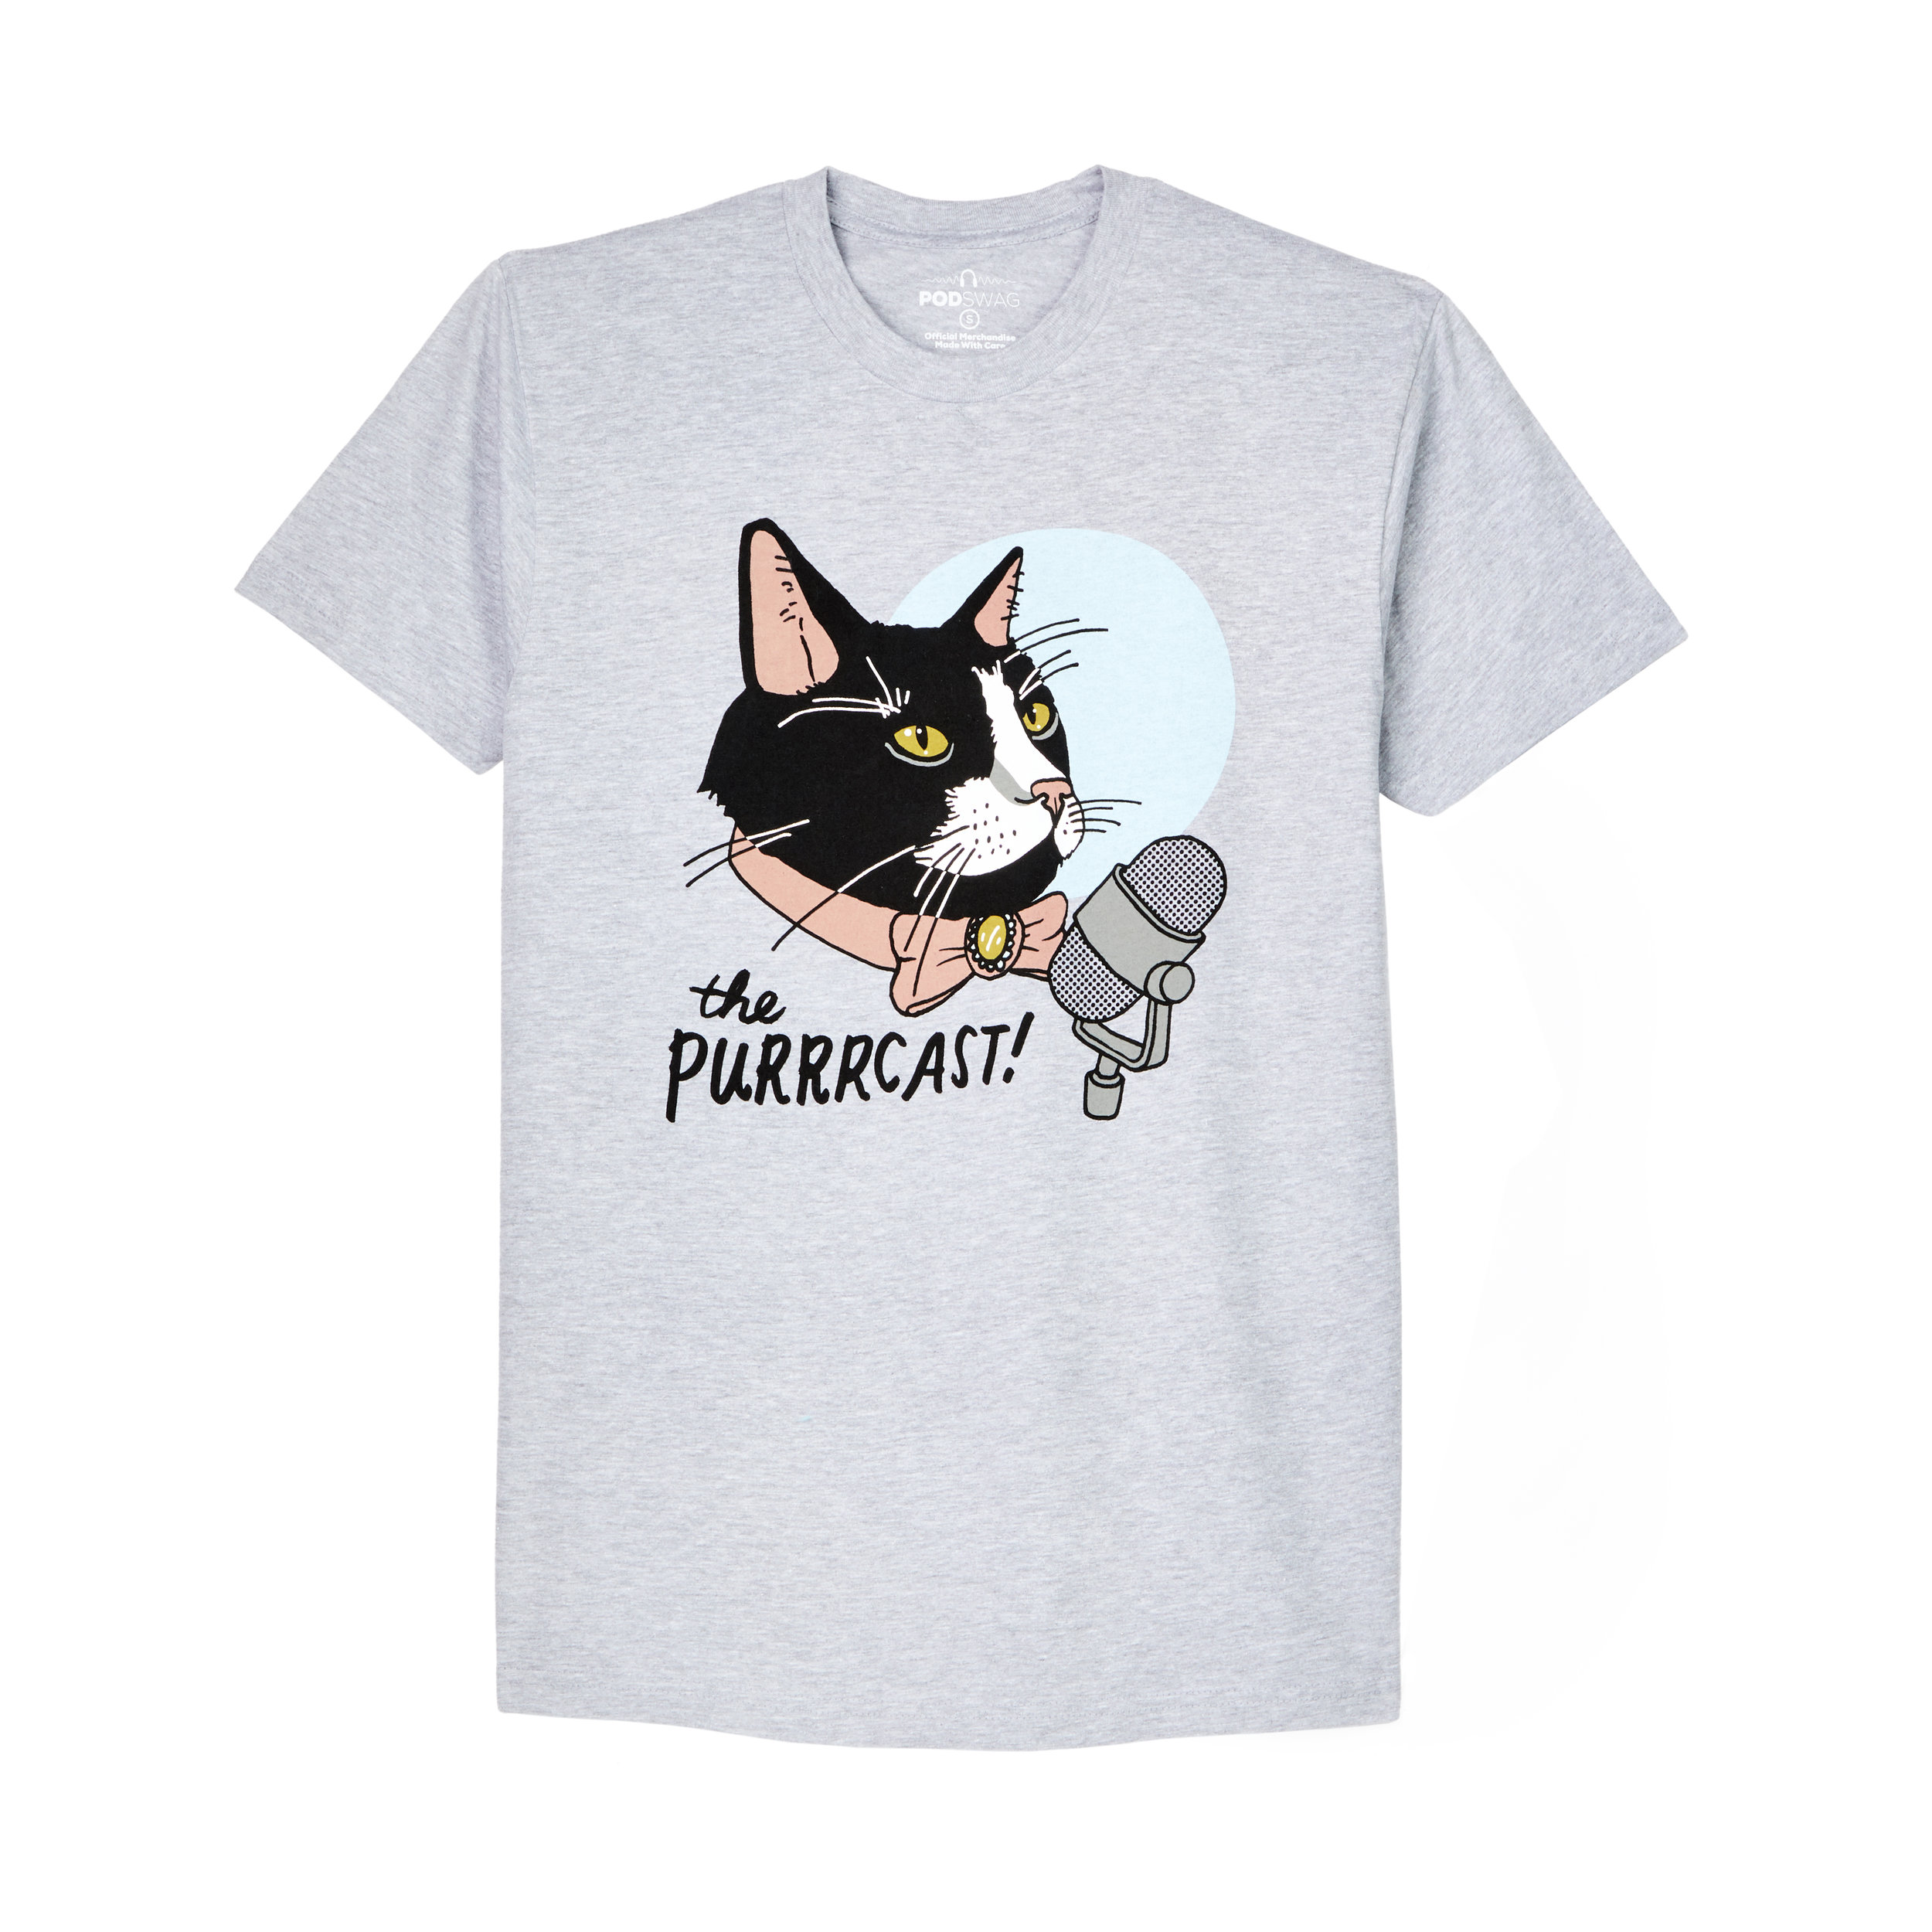 The Purrrcast: T-shirt